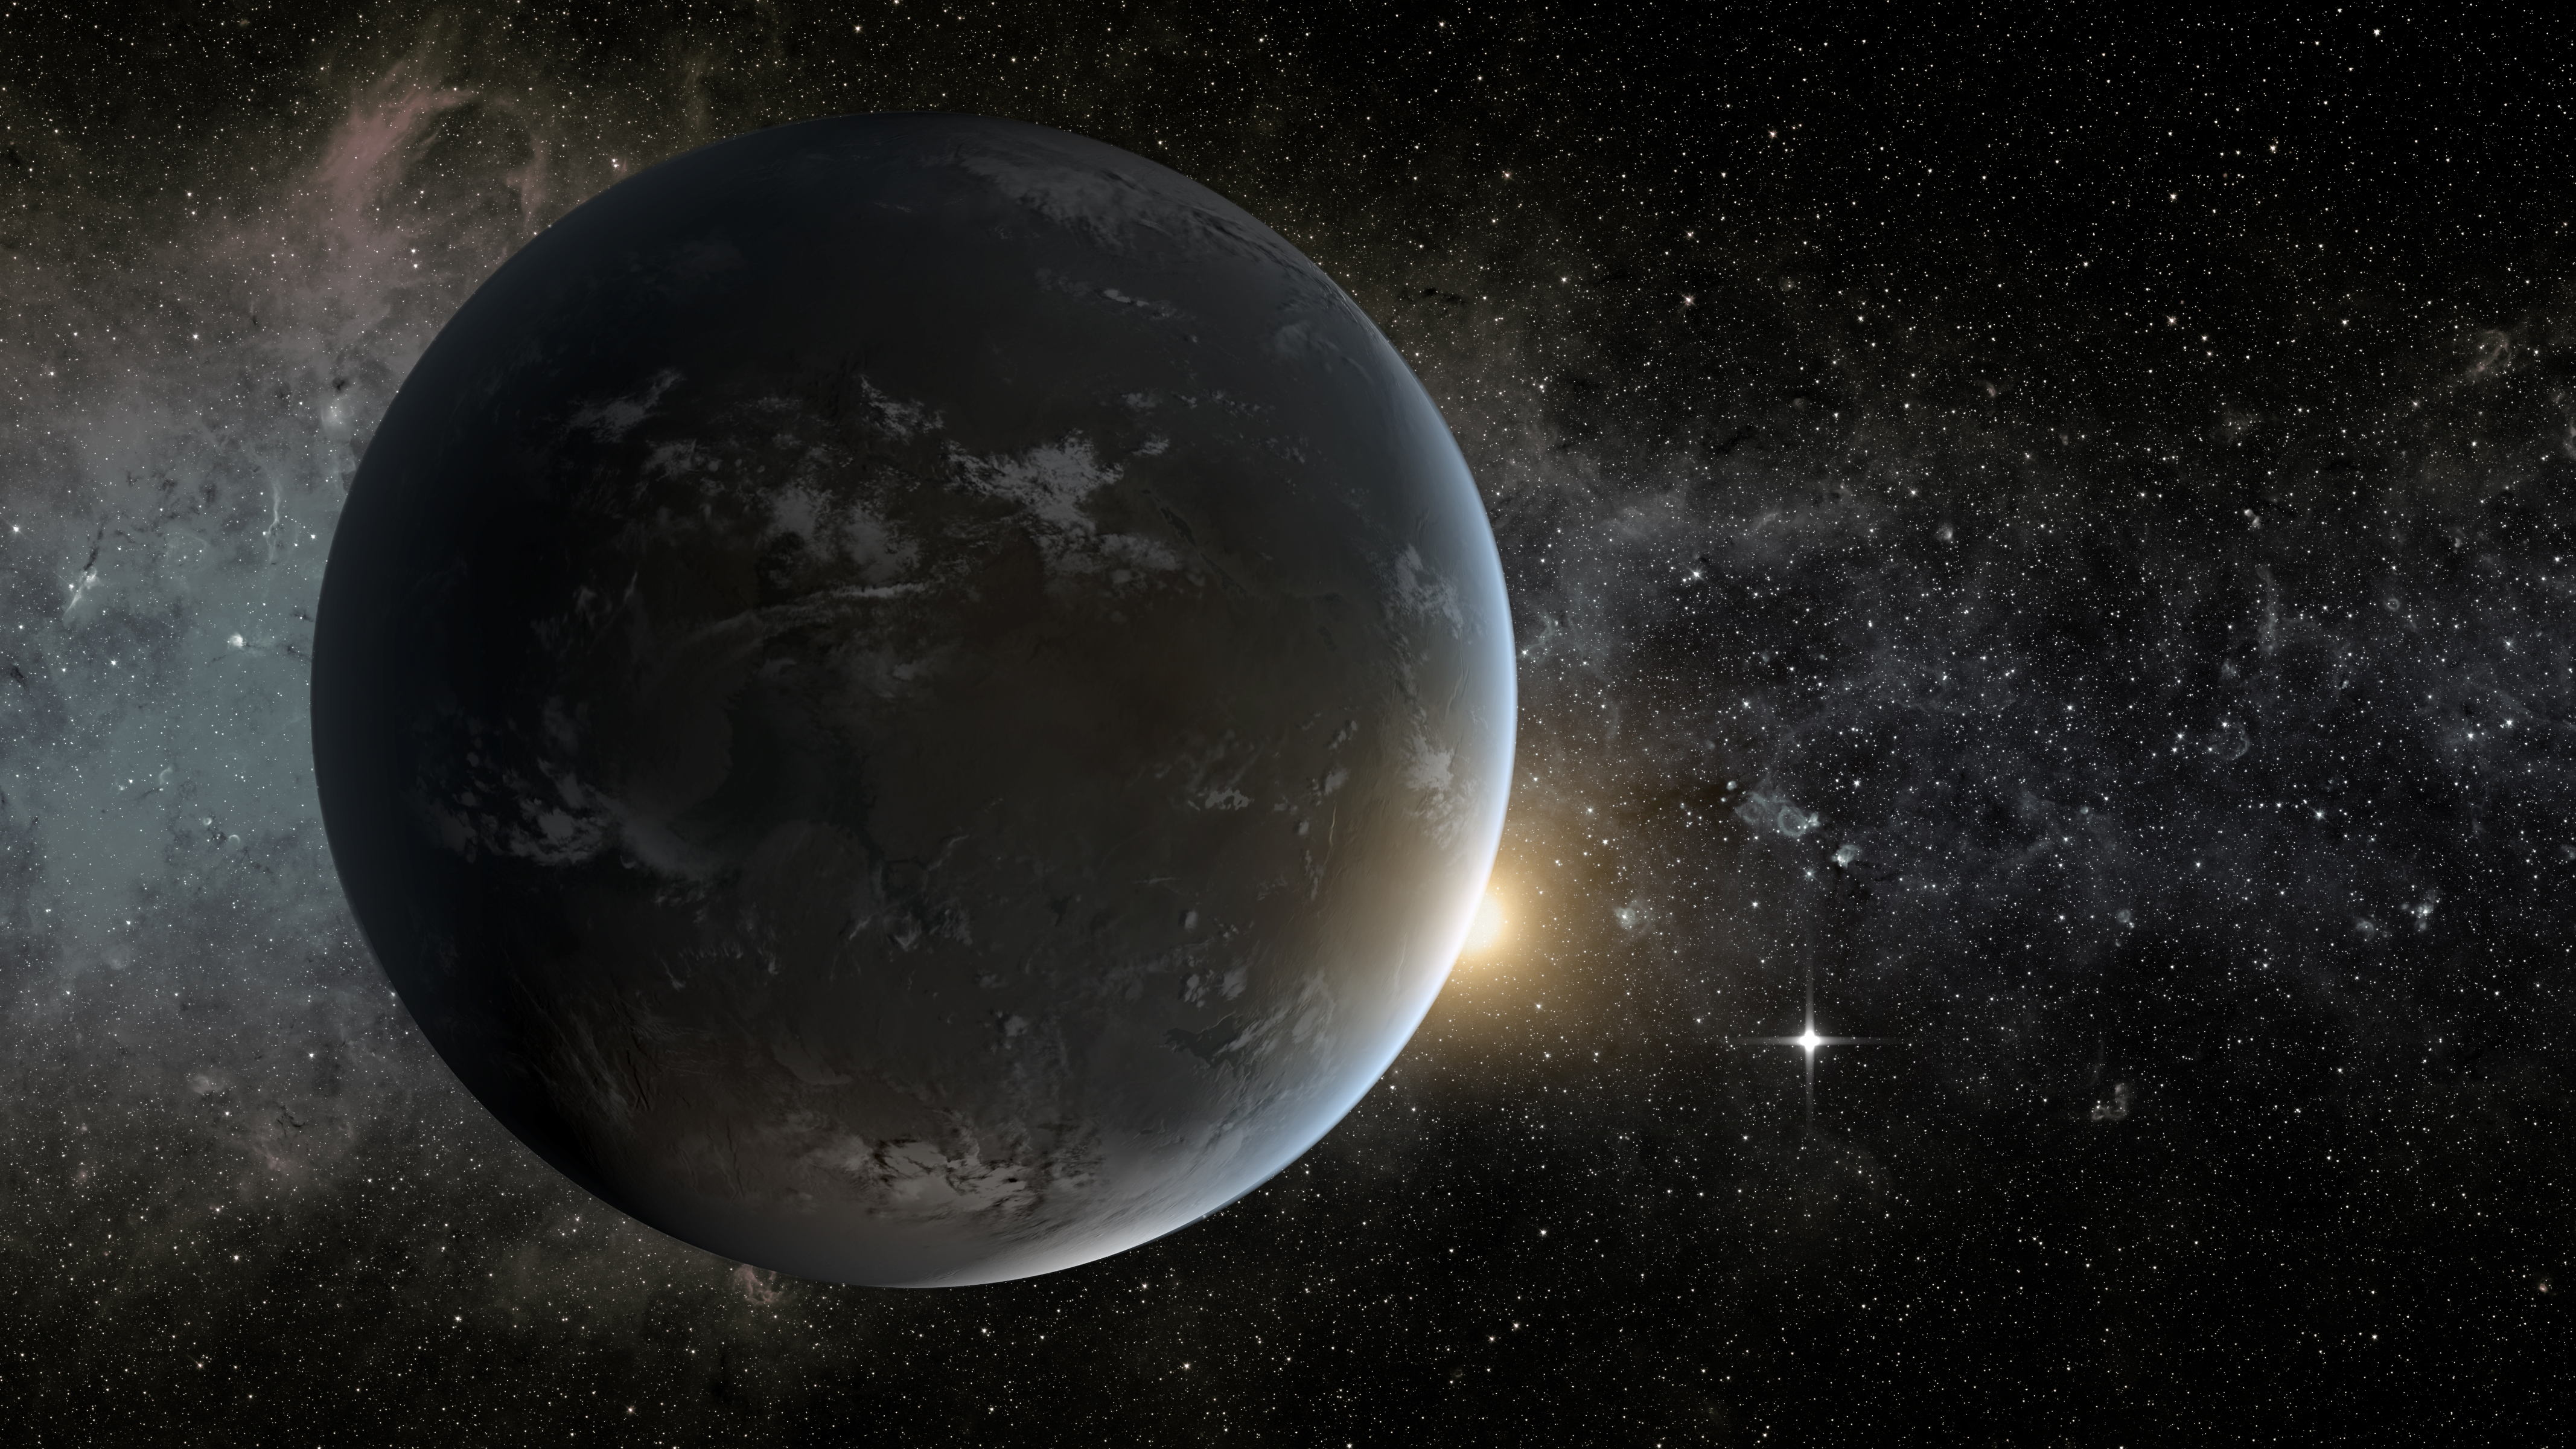 _images/Kepler-62f_with_62e_as_Morning_Star.jpg